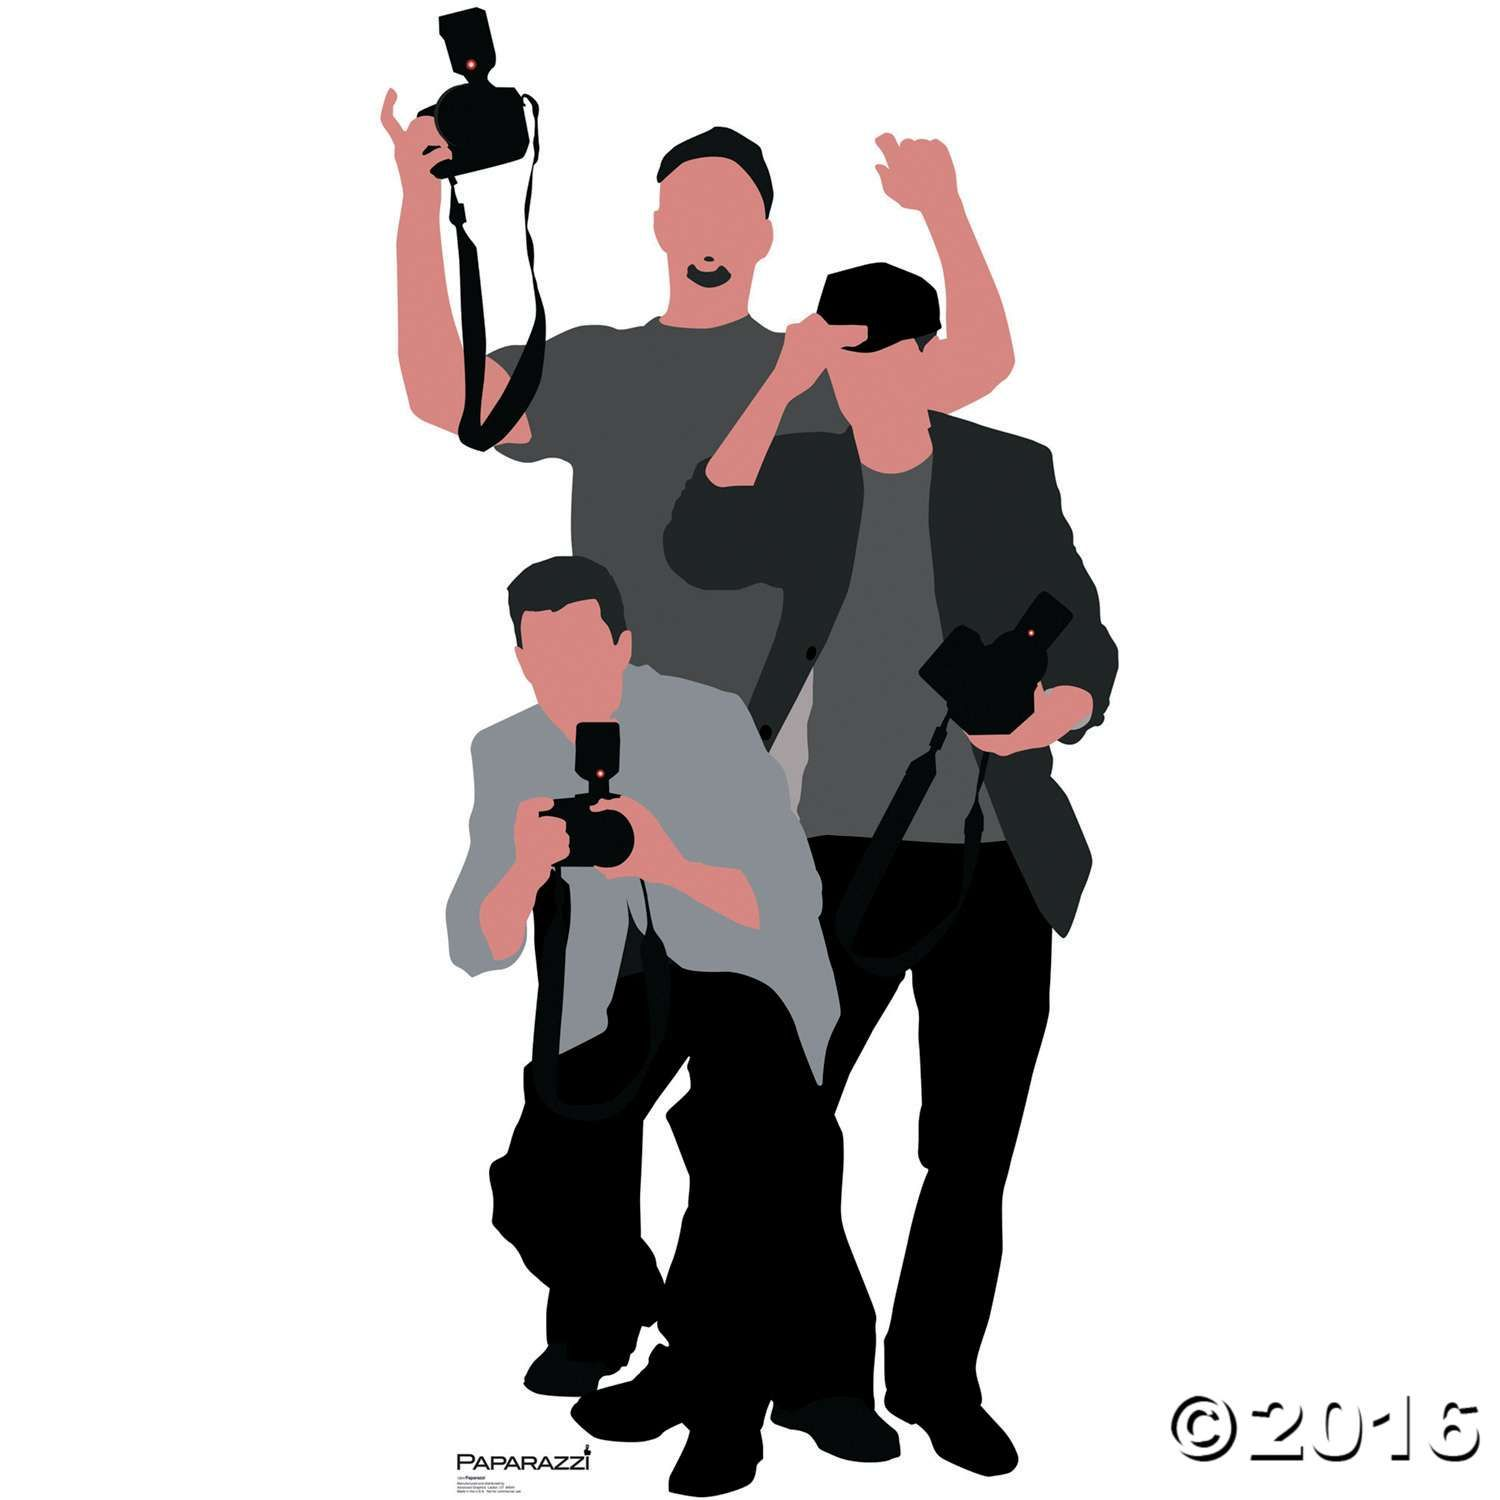 Paparazzi Stand-Up